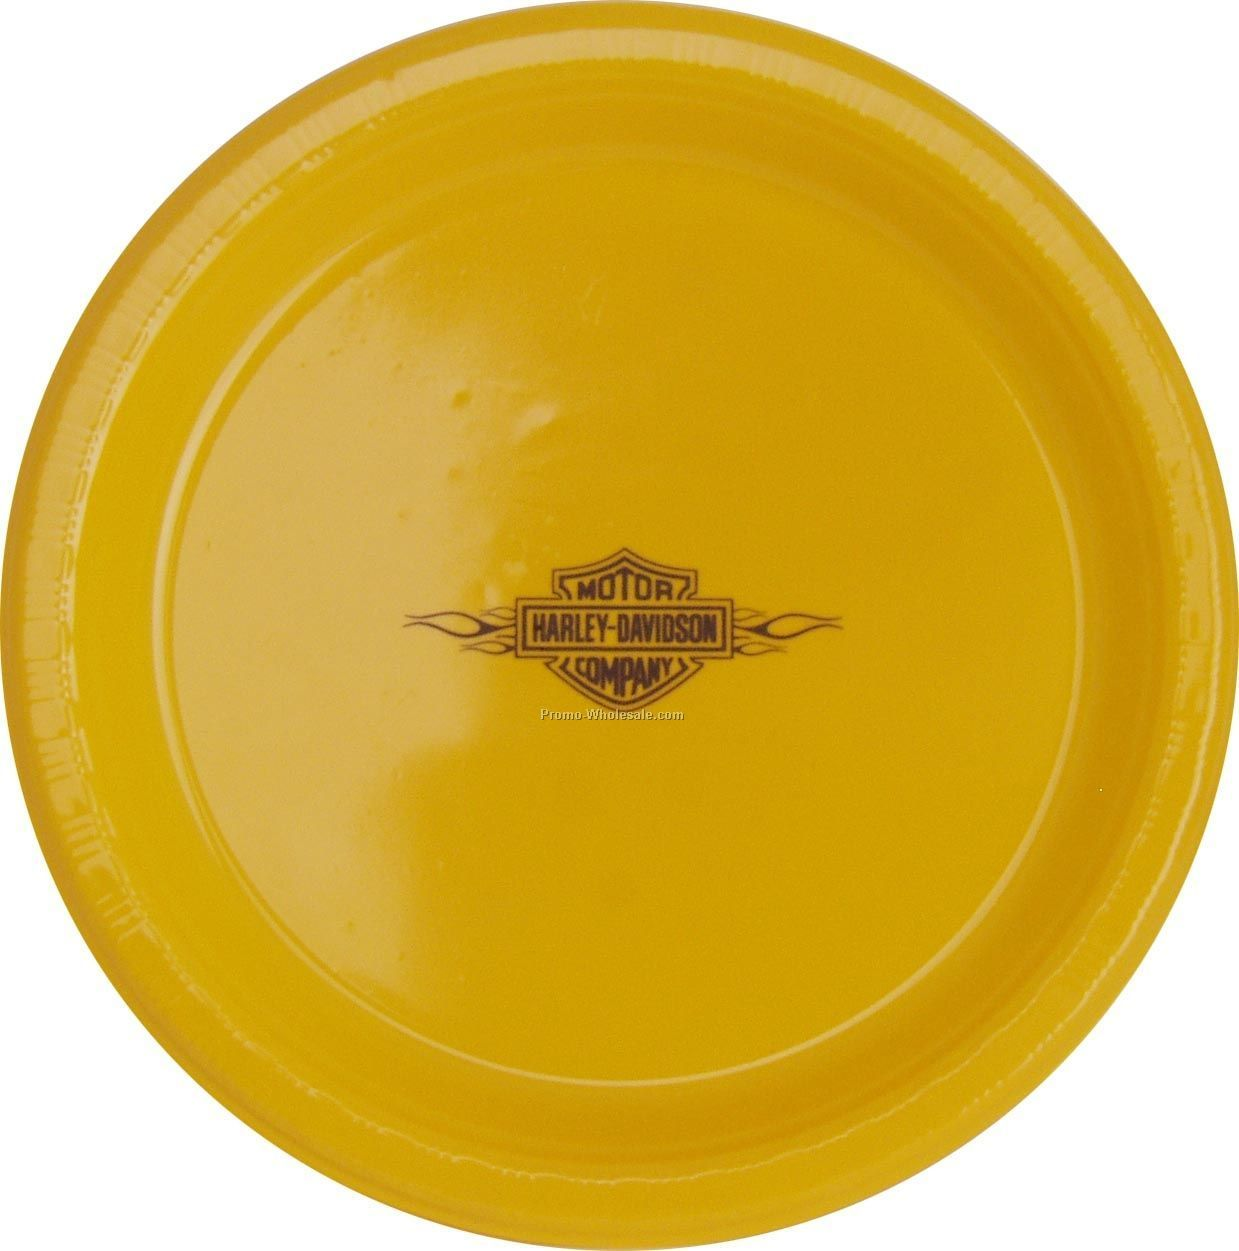 "Colorware 7"" School Bus Yellow Plate"